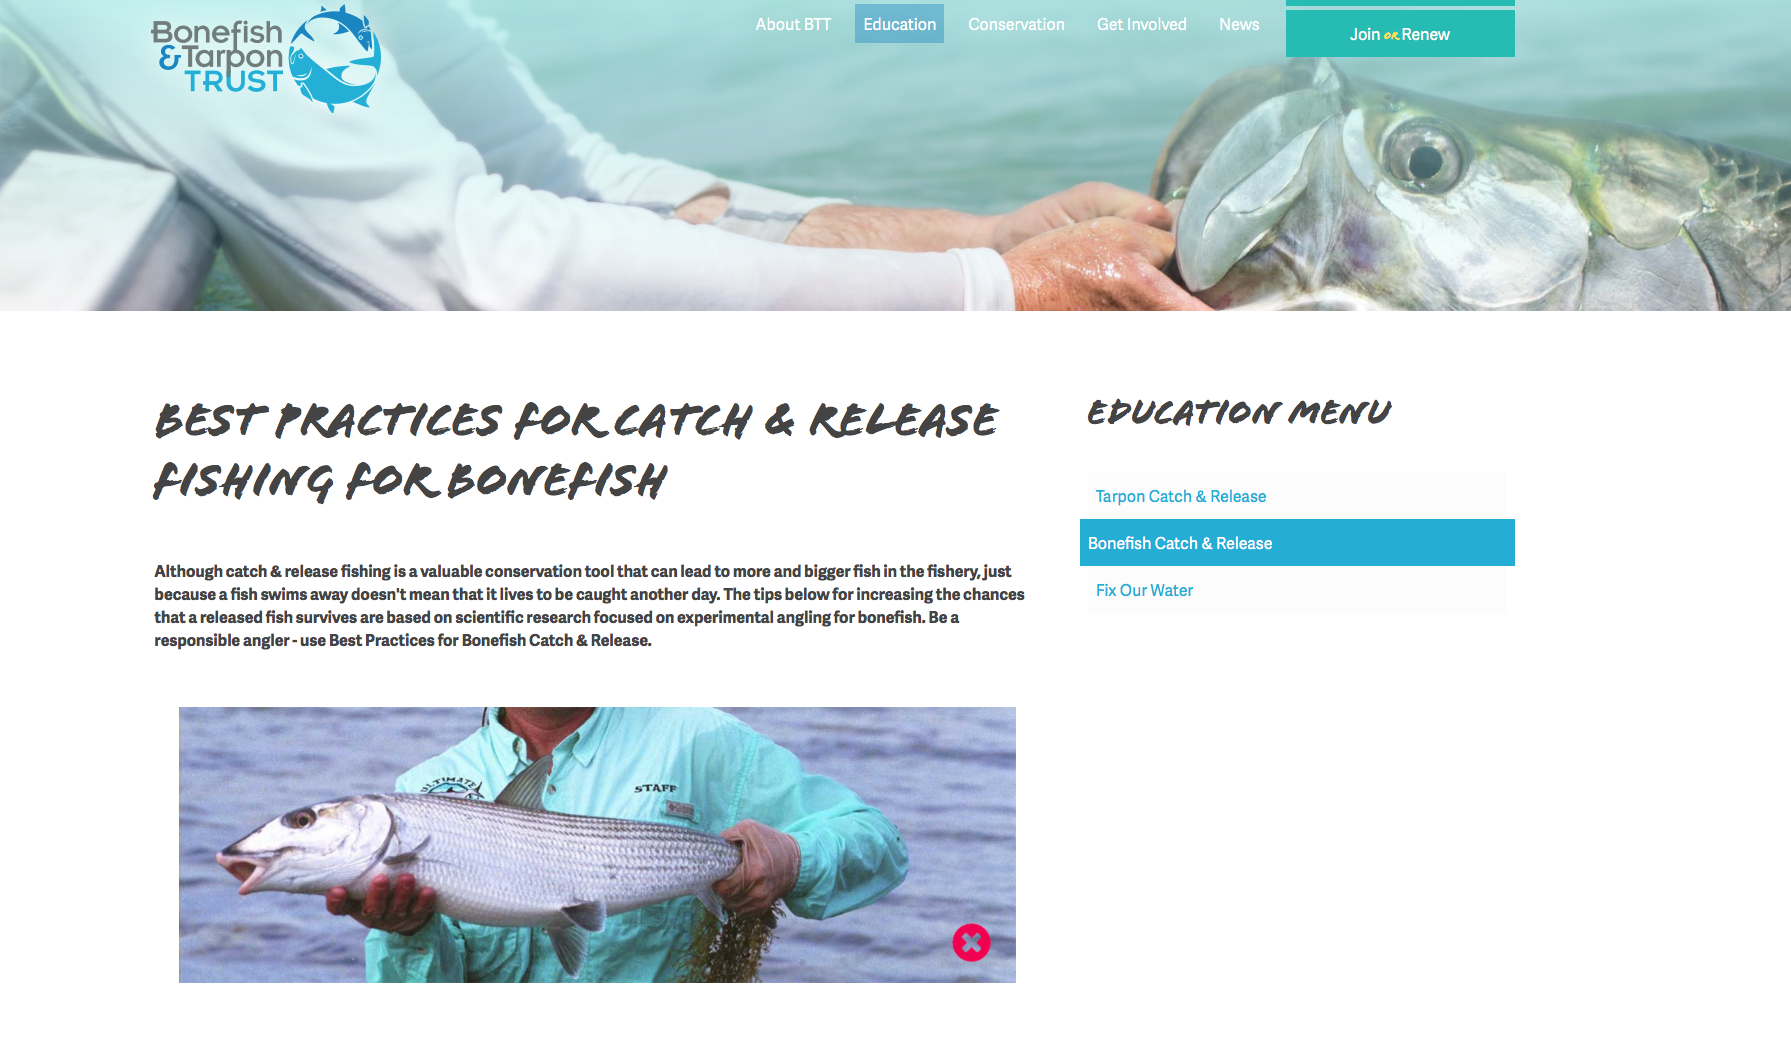 Image of BTT's Best Practices for catch & release fishing for bonefish from thier website bonefishandtarpontrust.org